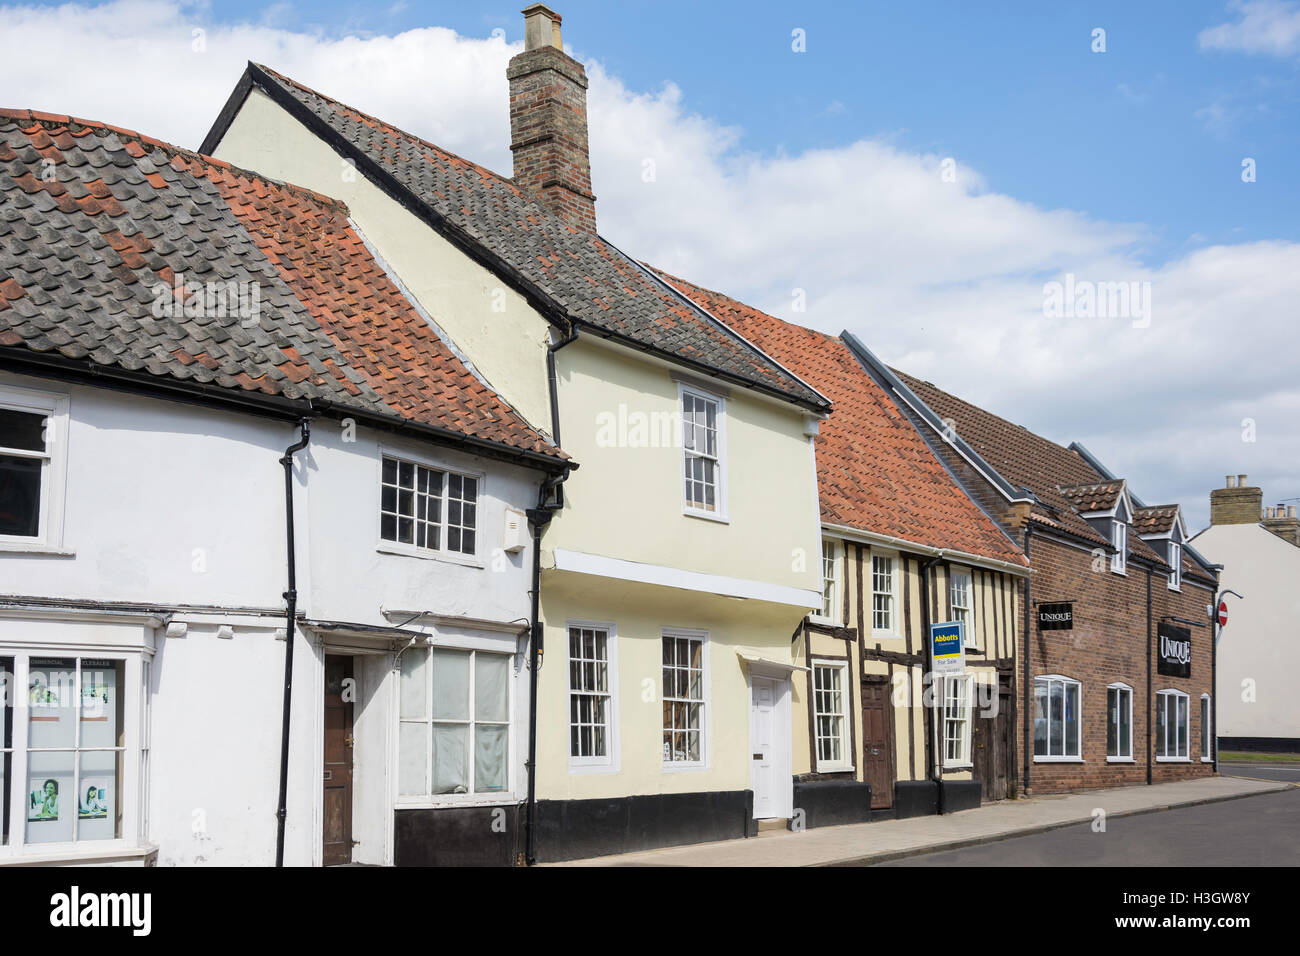 Period houses, Castle Street, Thetford, Norfolk, England, United Kingdom - Stock Image